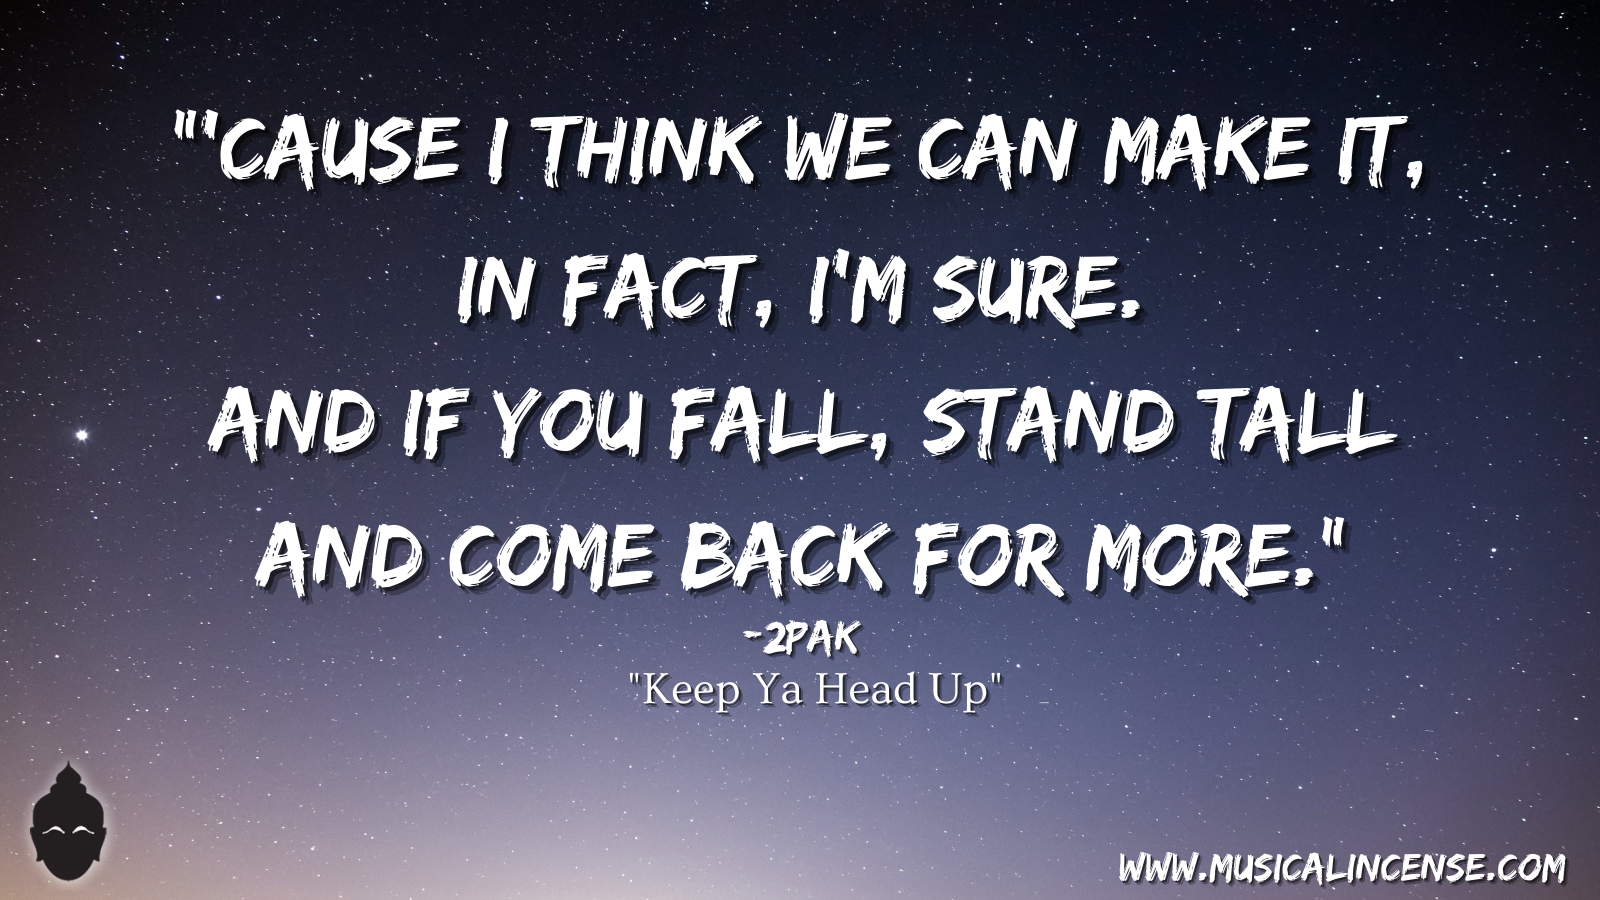 """Cause I think we can make it, in fact, I'm sure. And if you fall, stand tall and comeback for more."" ~ 2Pak [1600 x 900]"